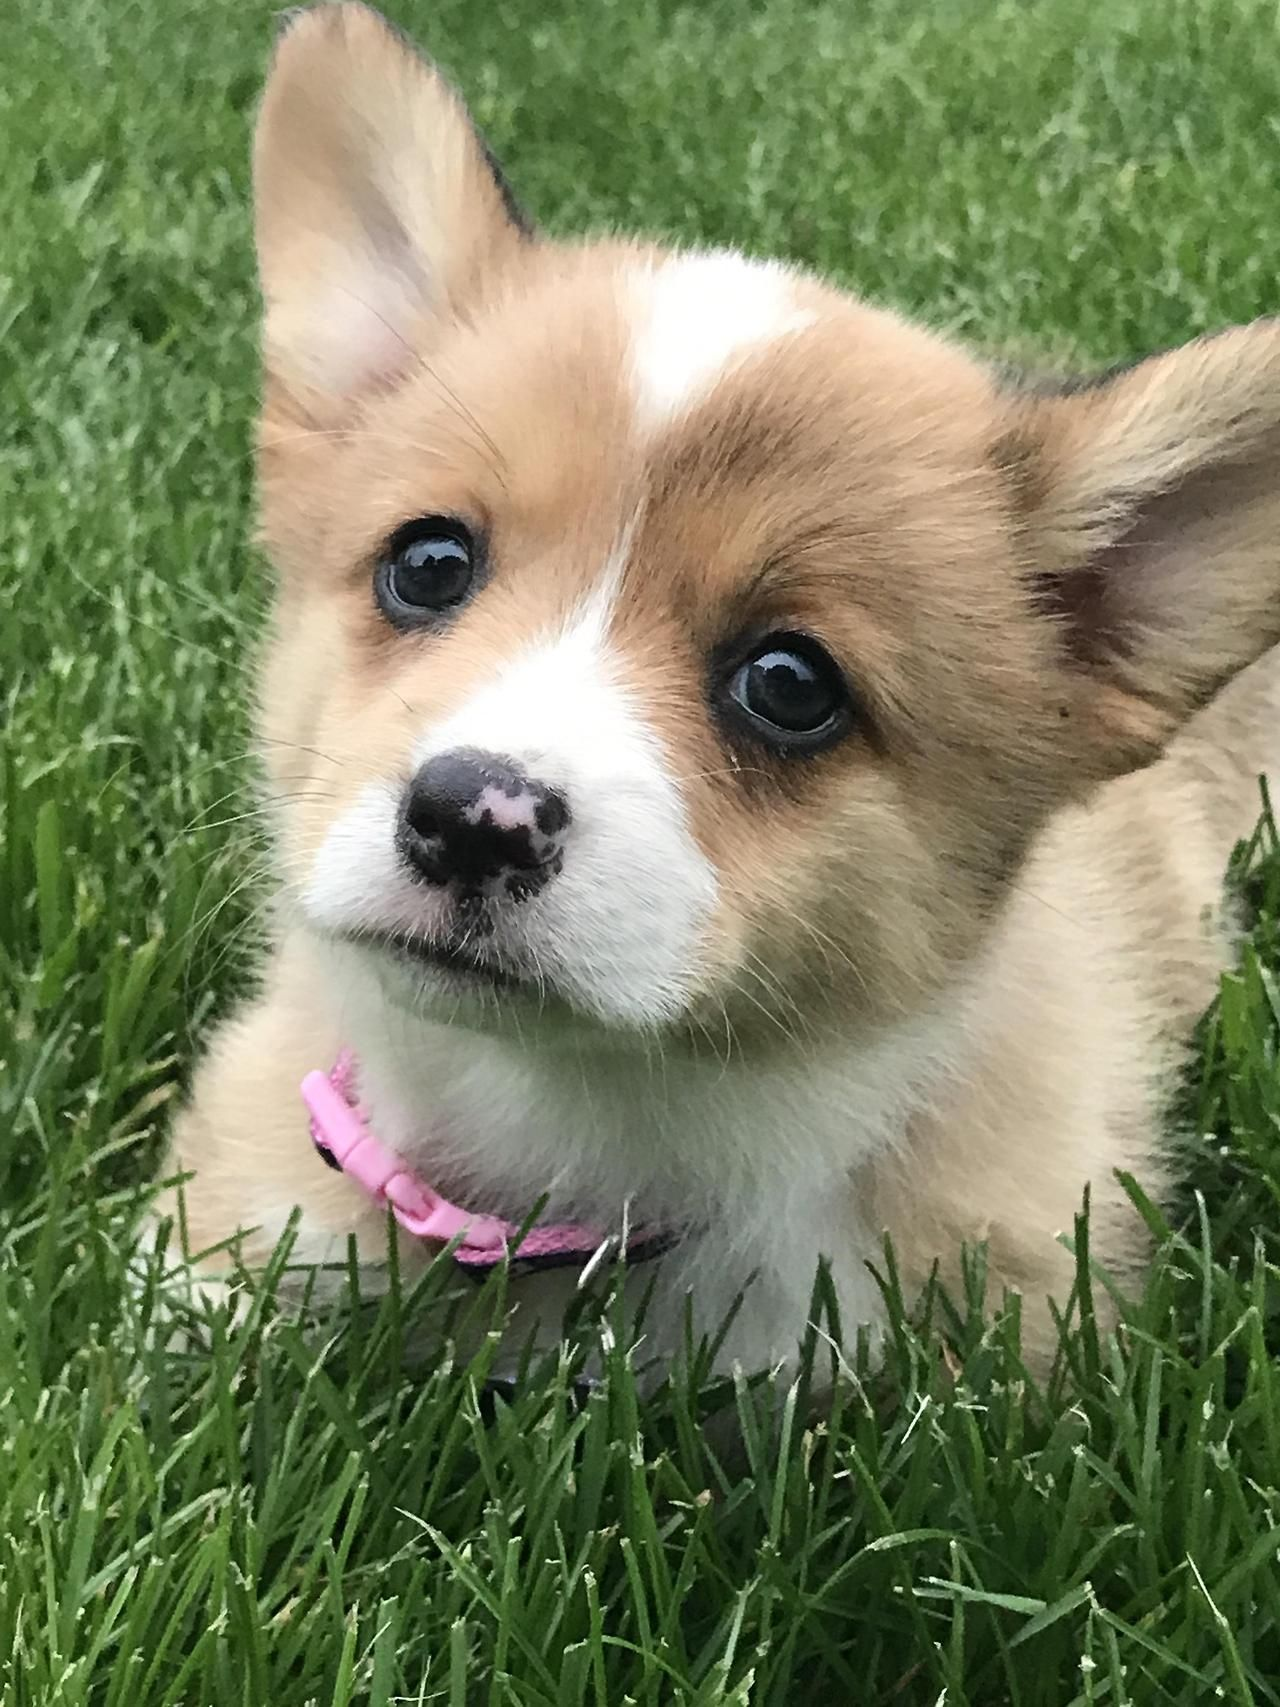 The Queens Corgis Our New Baby Gwendolyn At Queenscorgi Tumblr Com Corgi Corgi Queen Corgi Dog